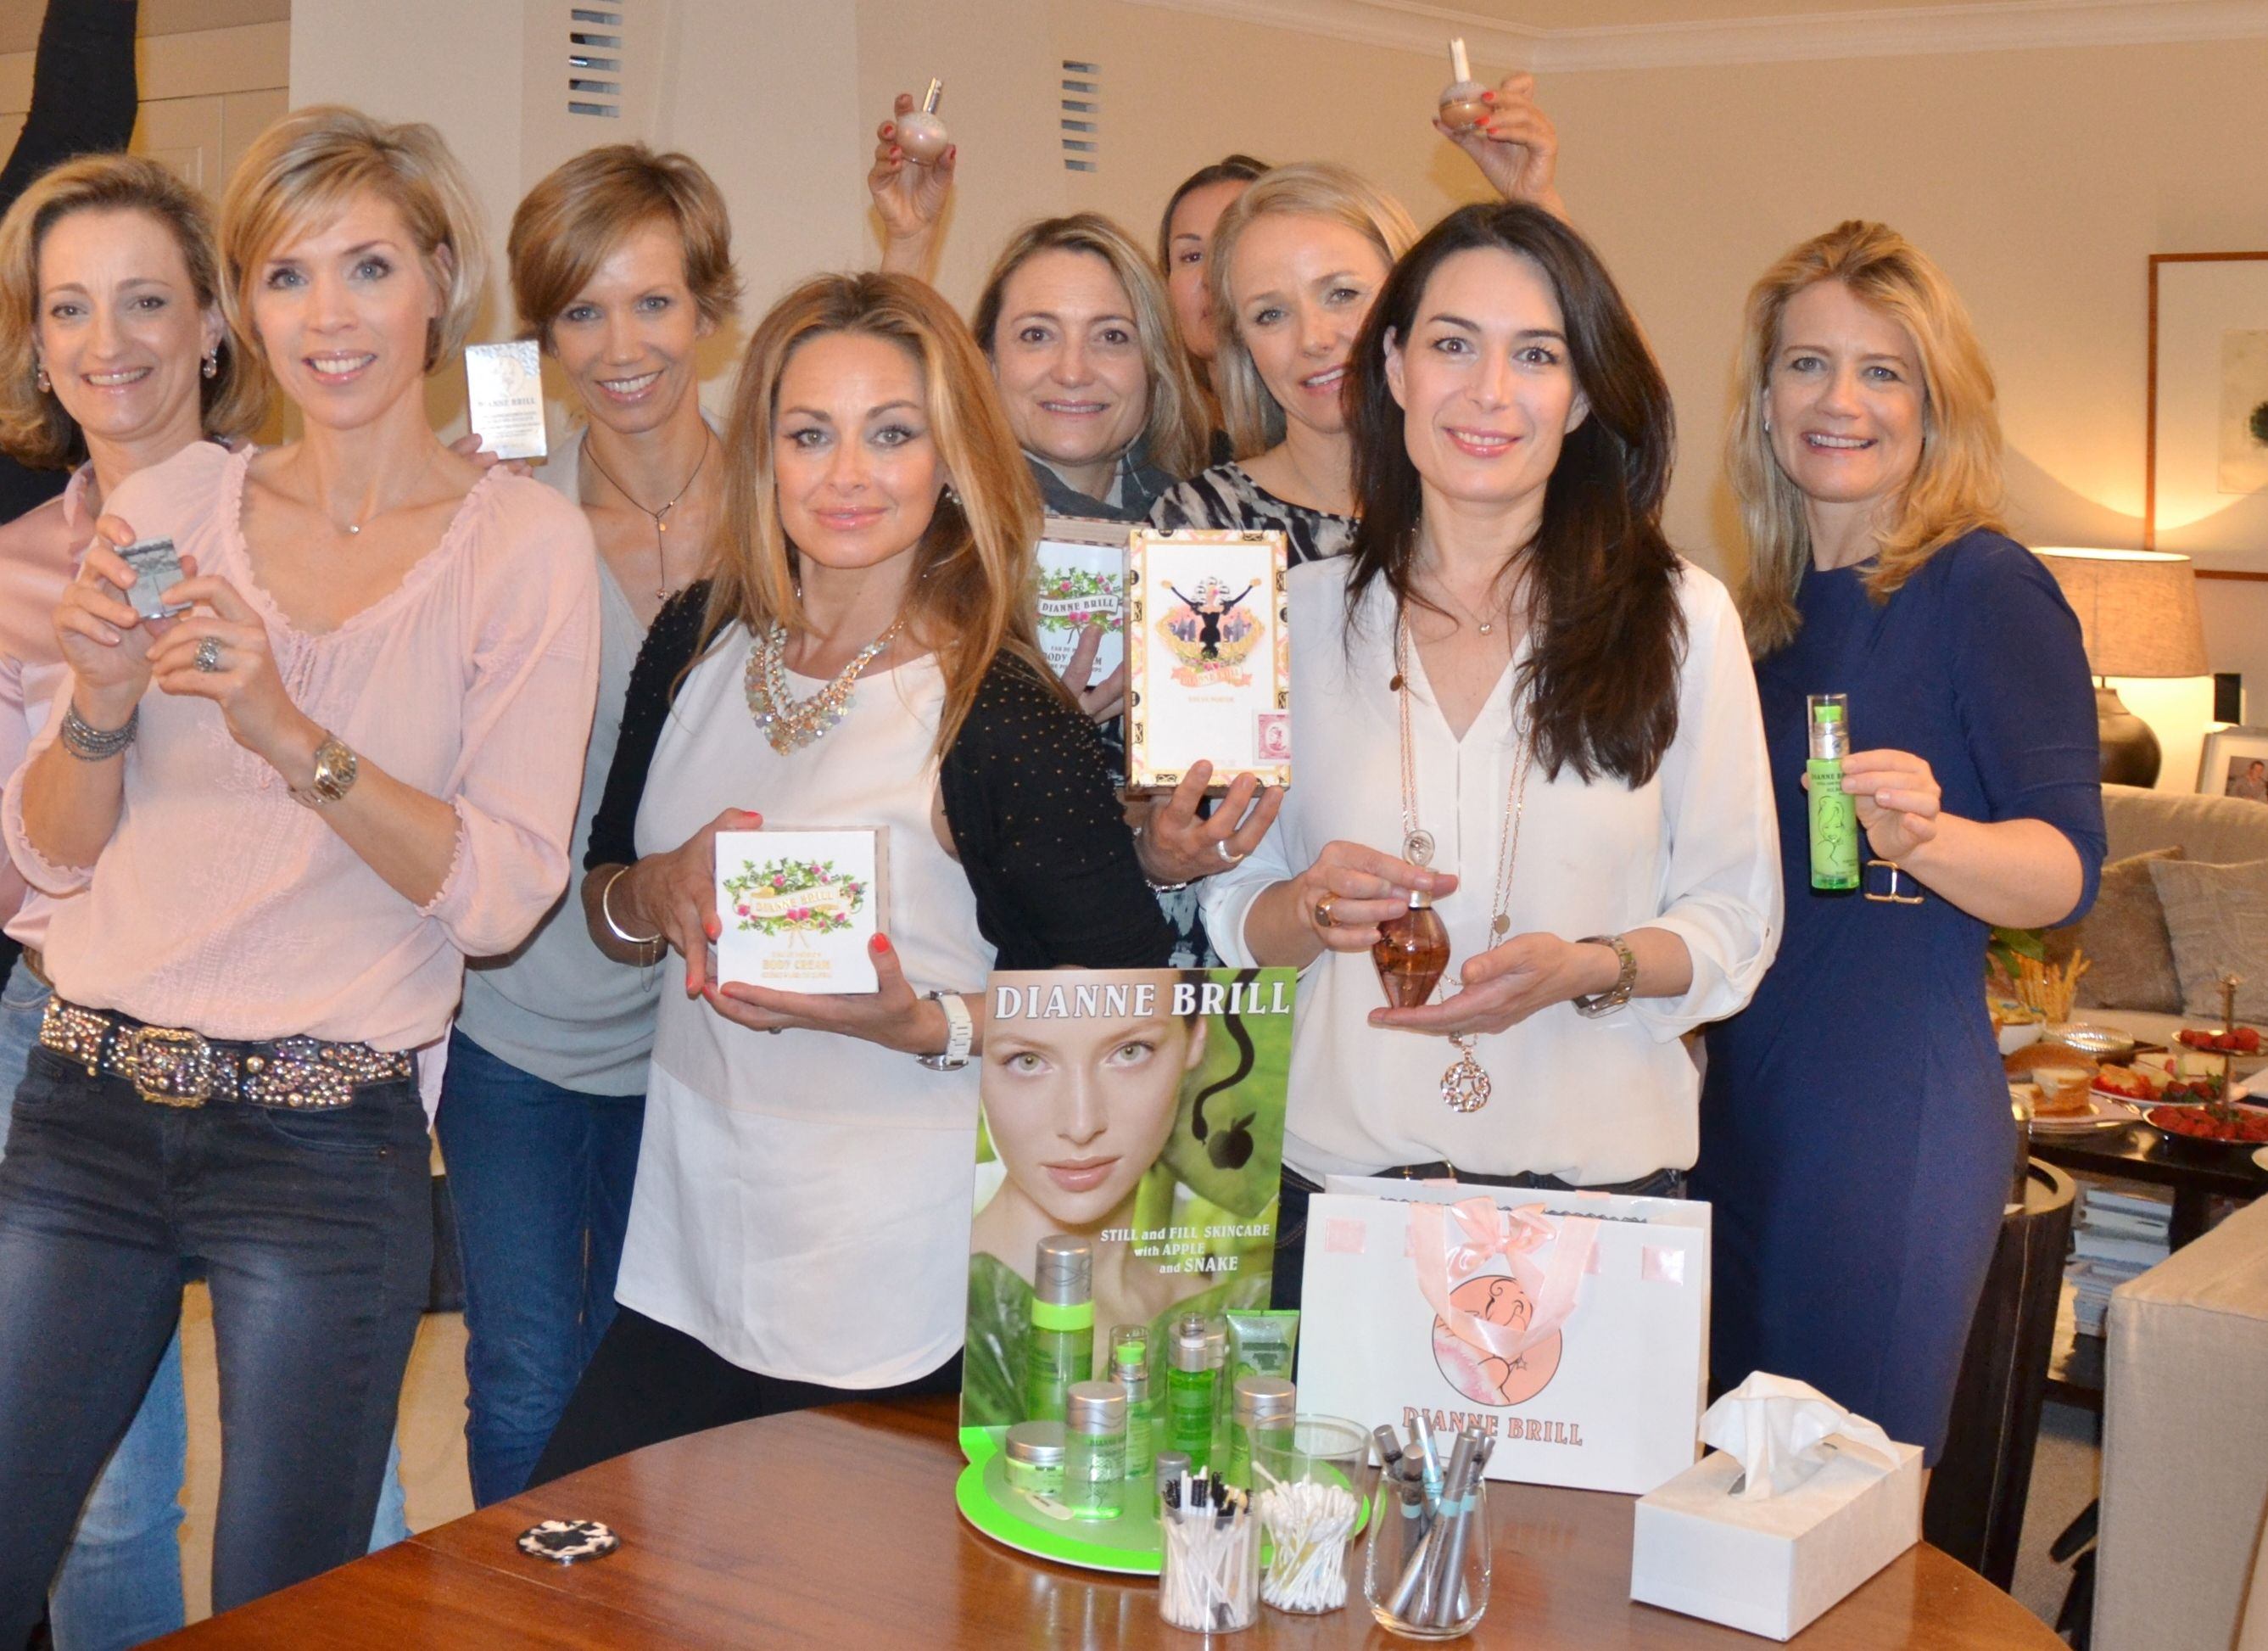 Dominque Stelling hosted the perfect party Look how happy everyone is now that they are all BRILL-ED !